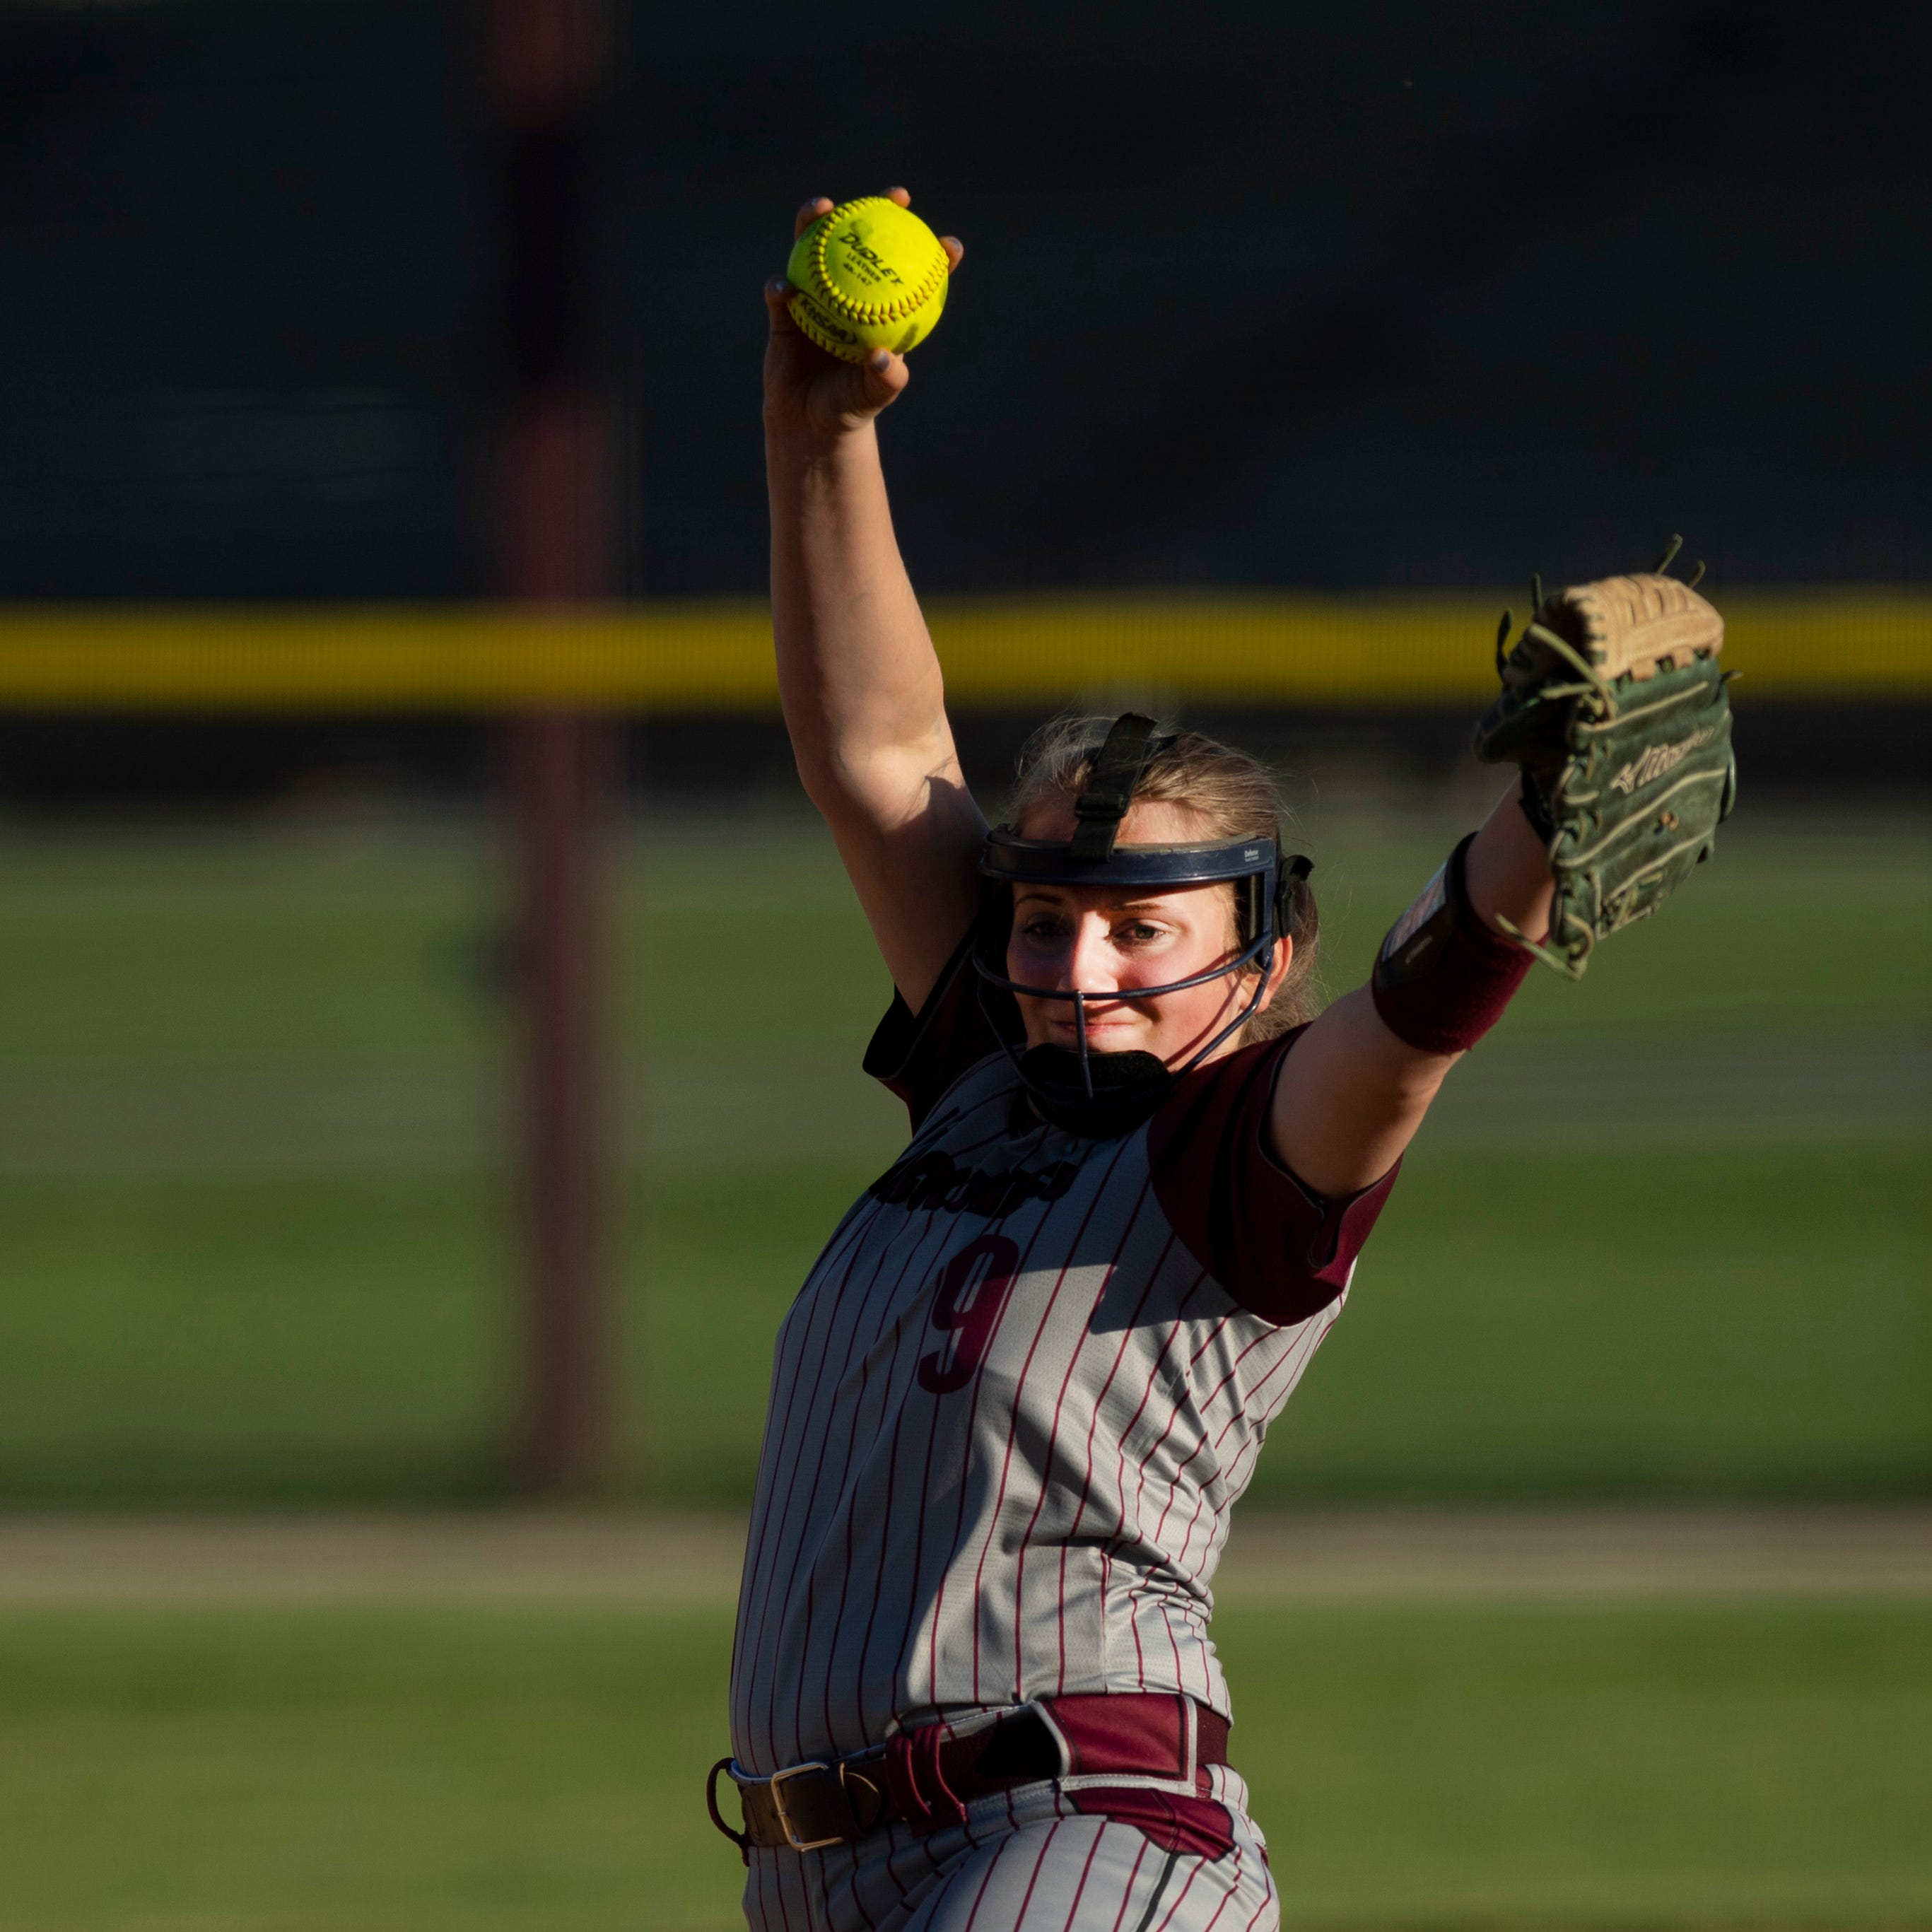 Henderson pitchers shut out Union to set up showdown with Webster for district's top spot